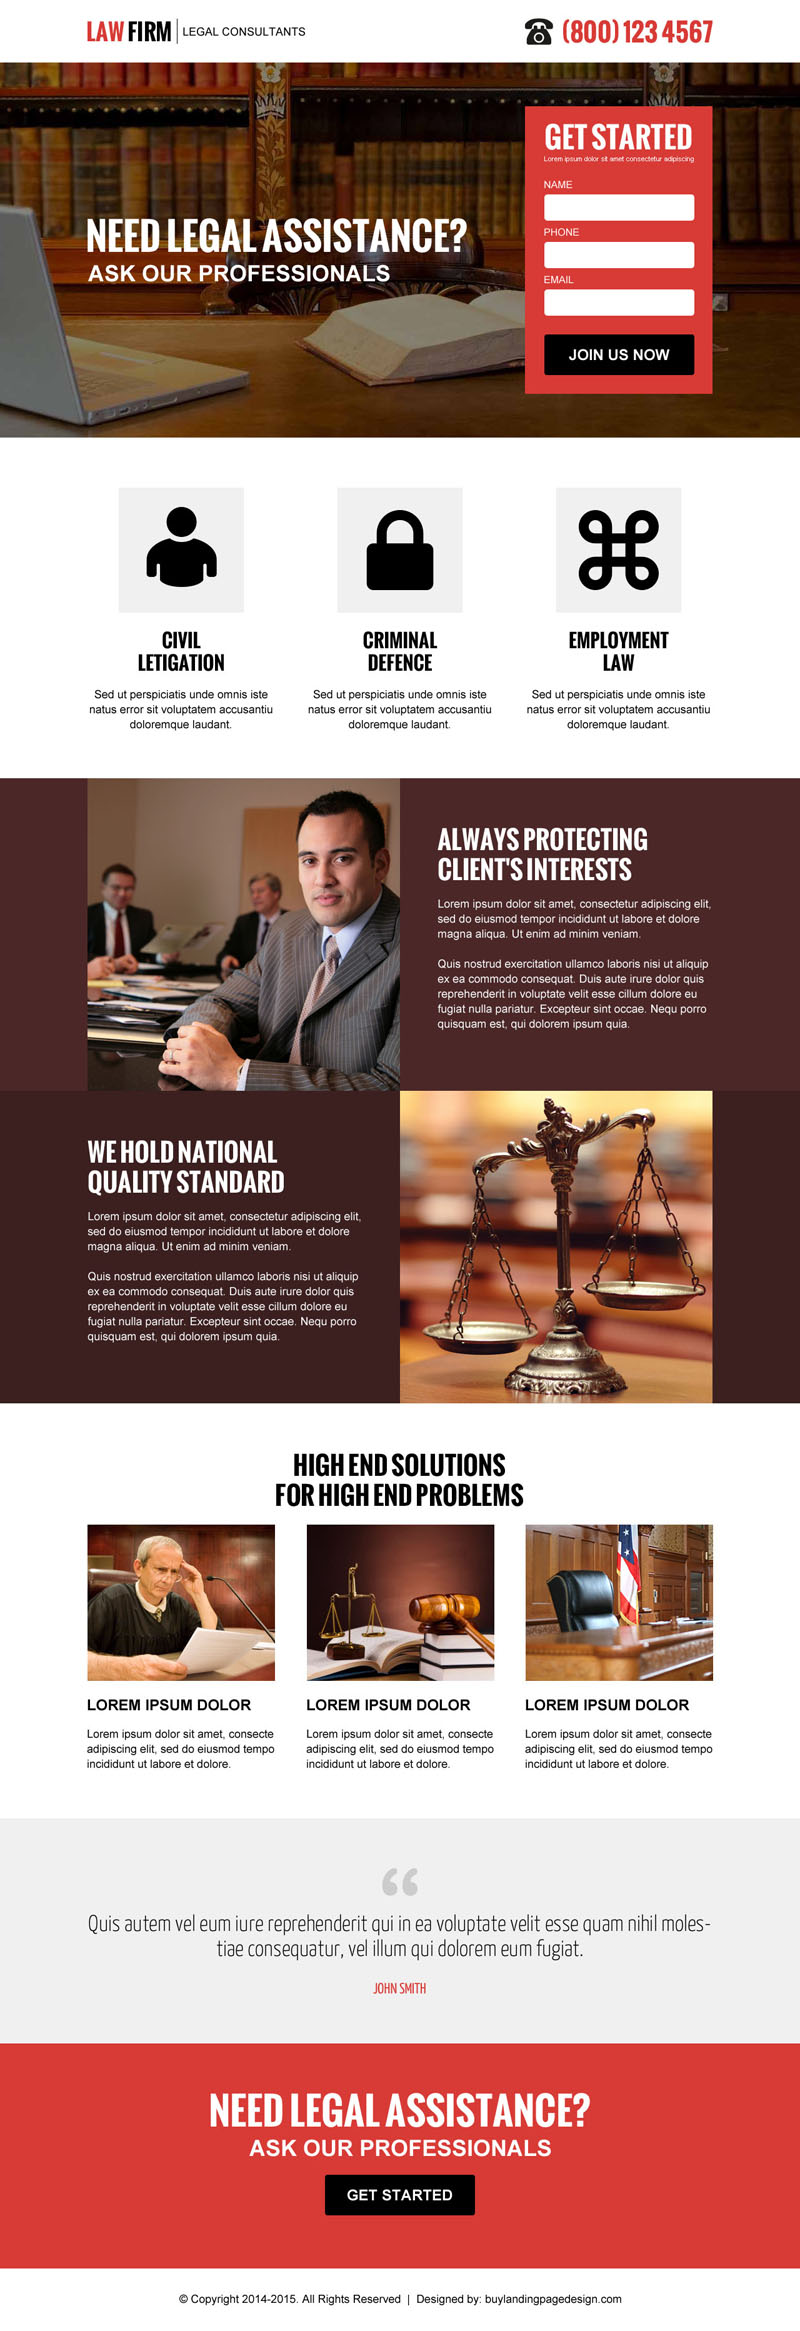 law-firm-lead-capture-converting-responsive-landing-page-design-template-002